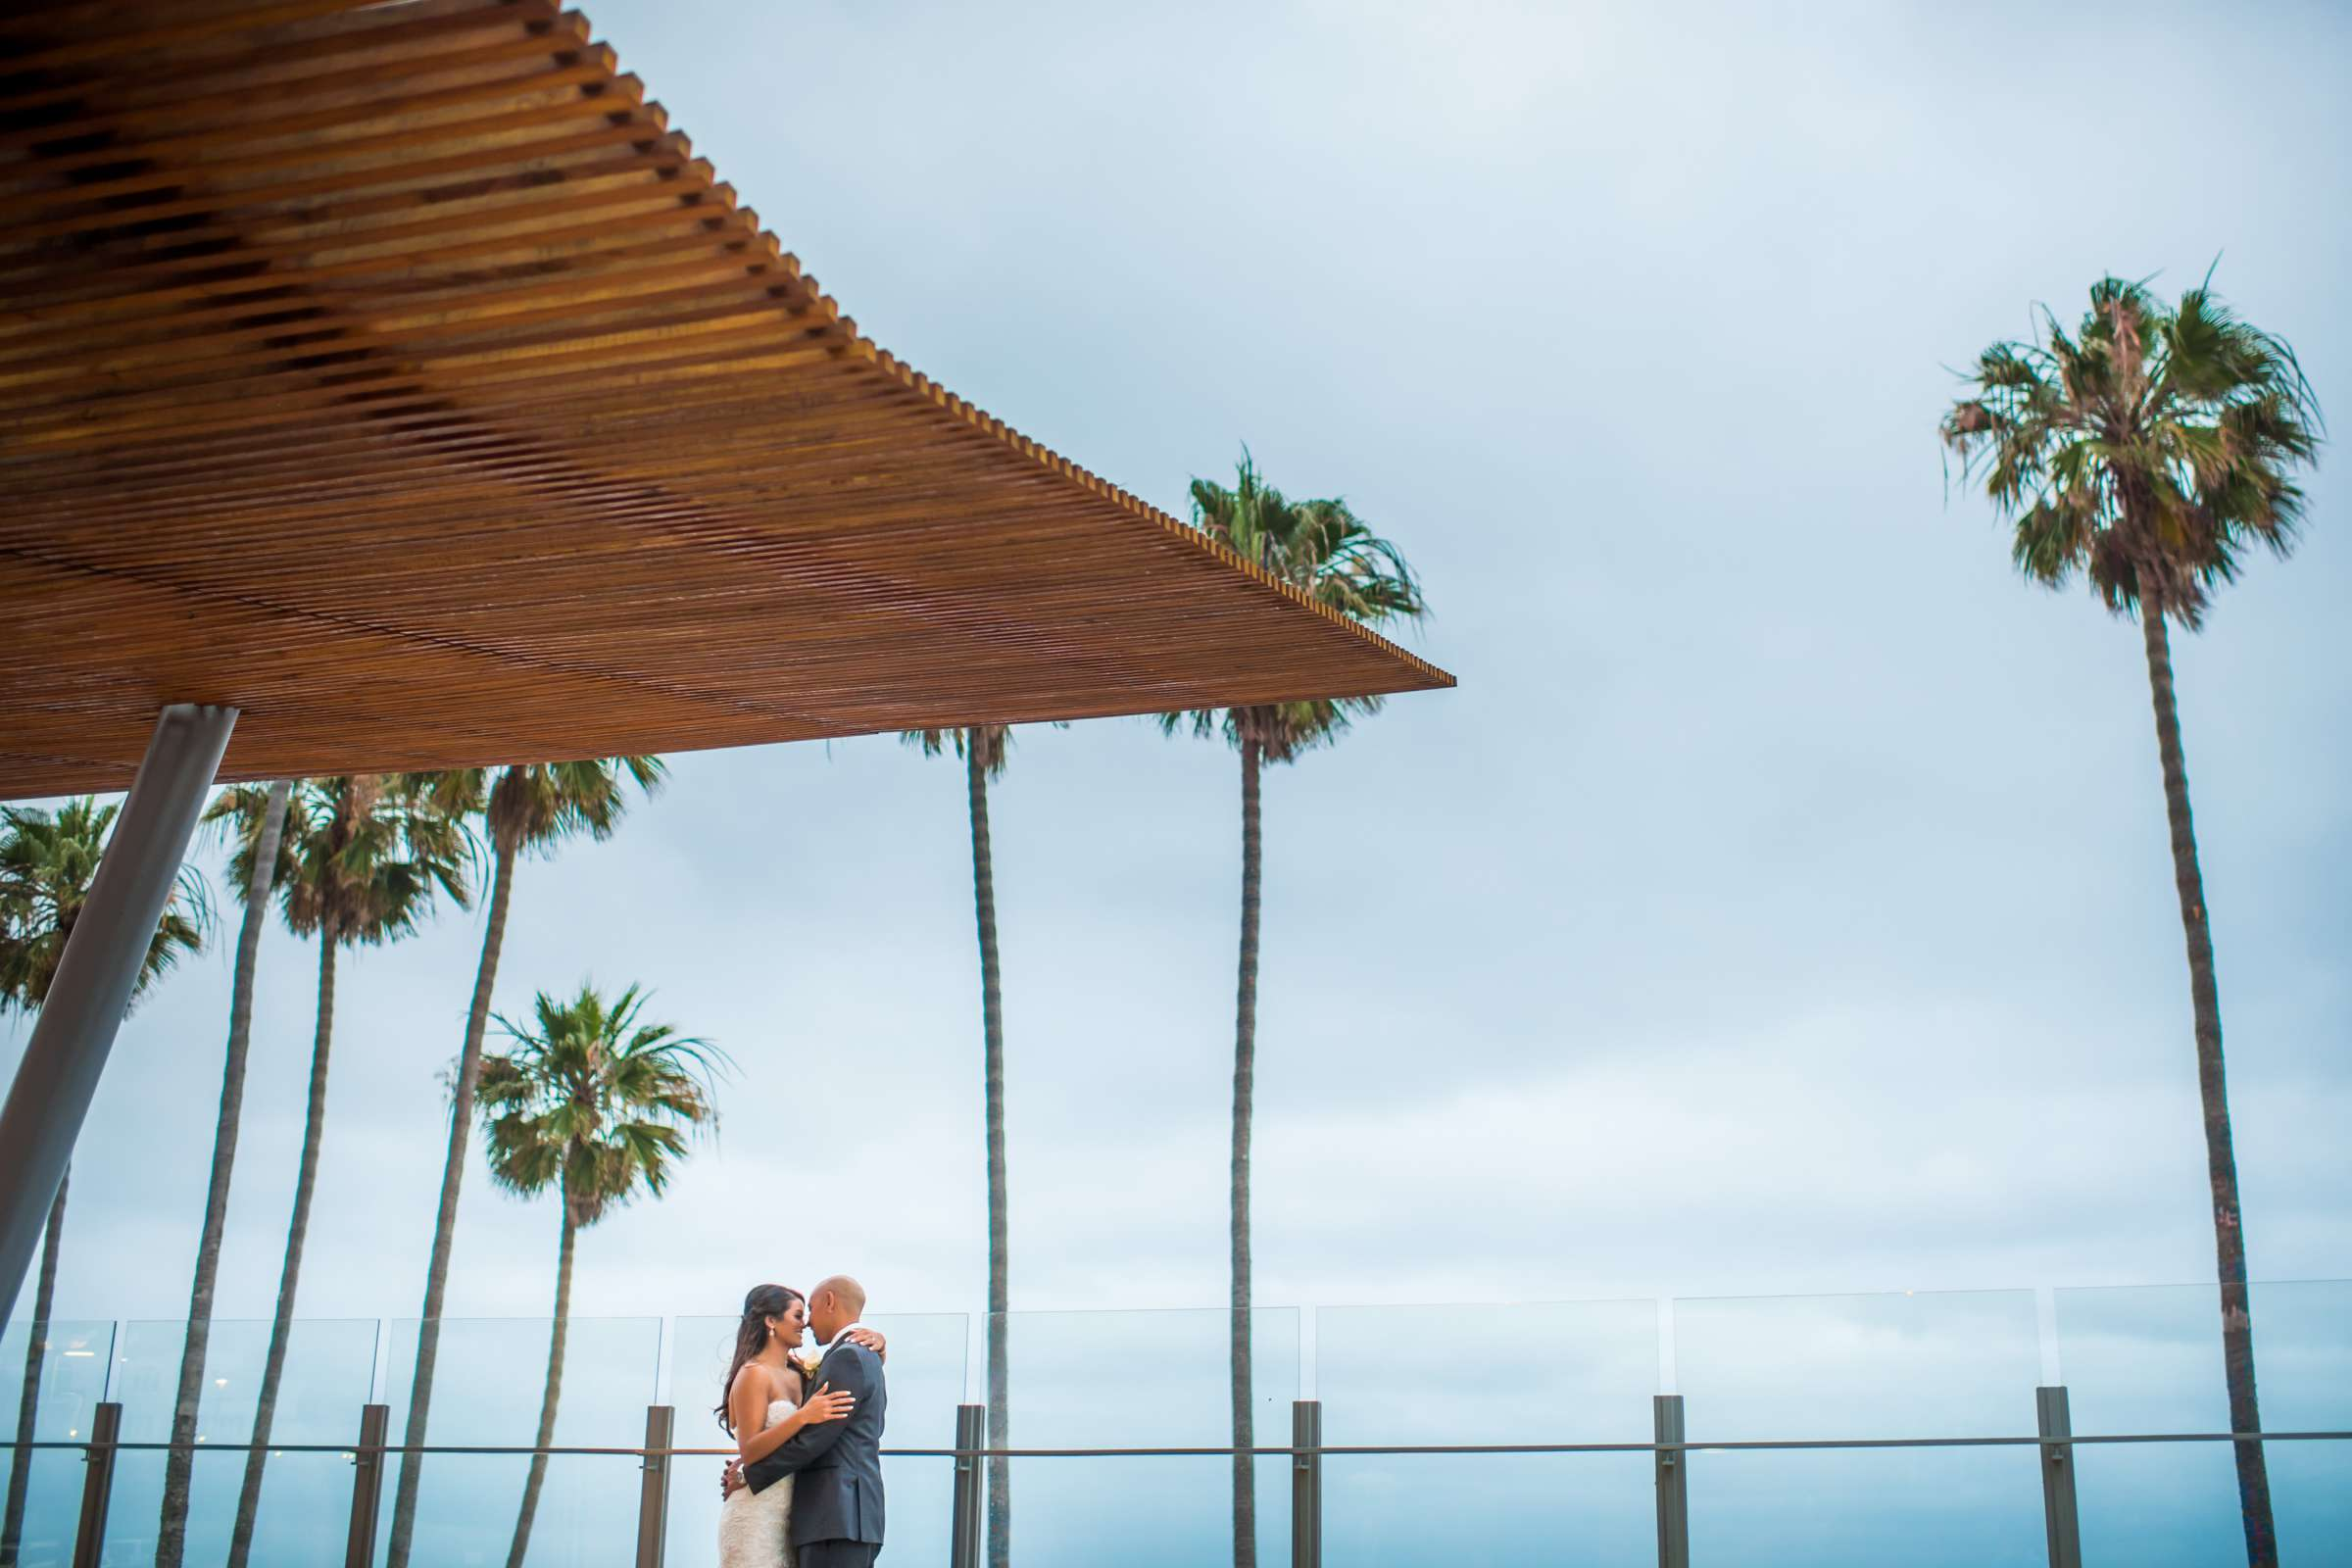 Scripps Seaside Forum Wedding coordinated by Lavish Weddings, Cindy and Justin Wedding Photo #381767 by True Photography